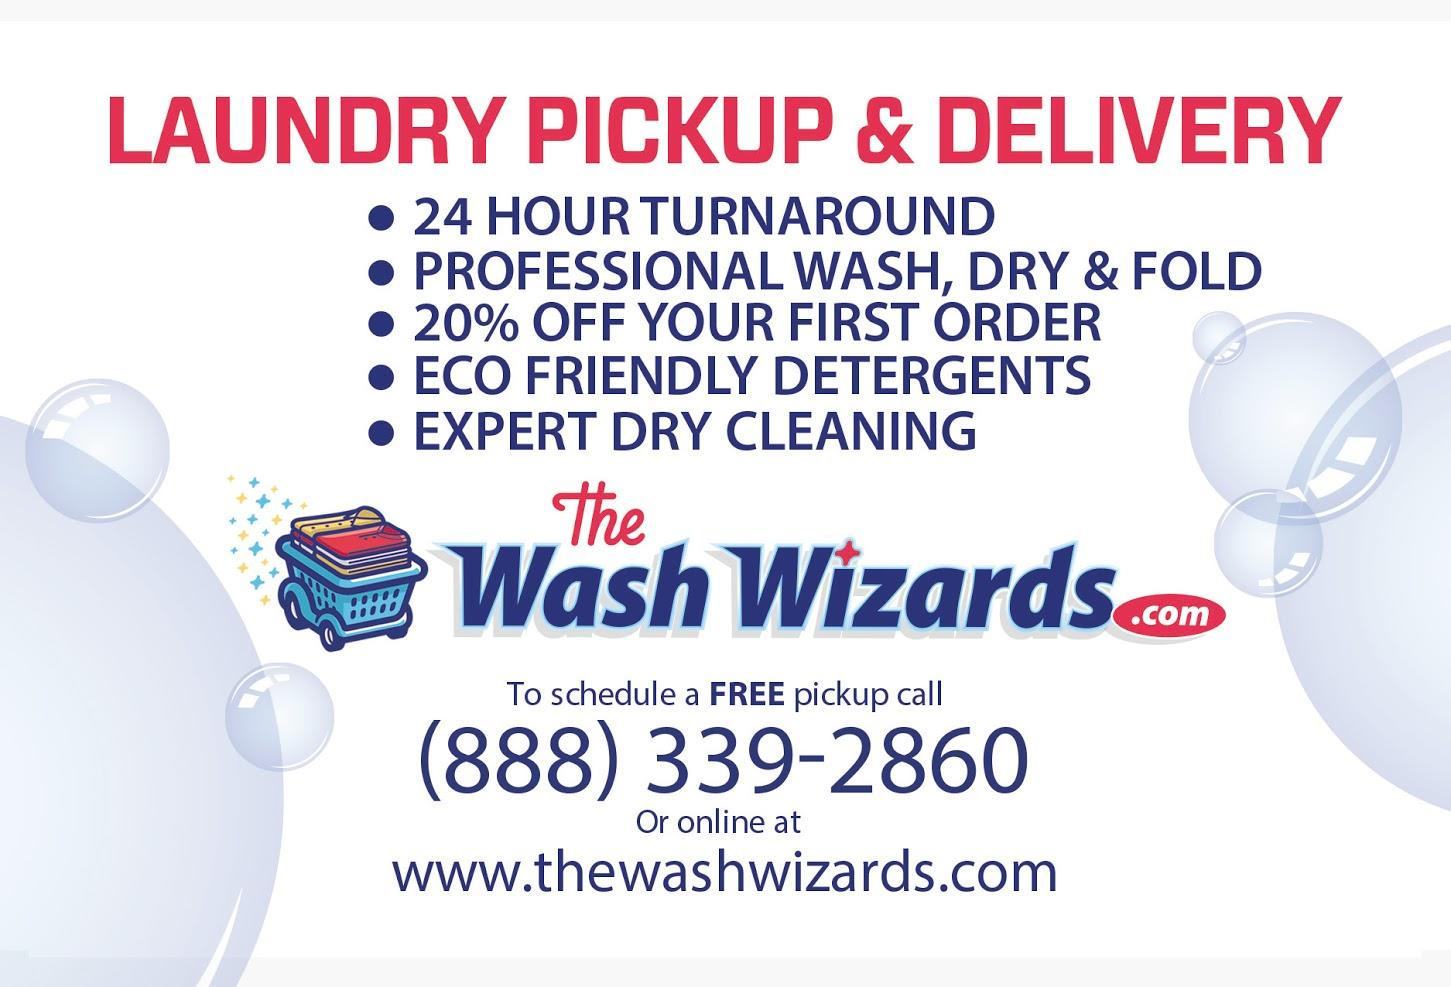 Wash Wizards Laundry Pickup & Delivery Service - Oxnard image 13